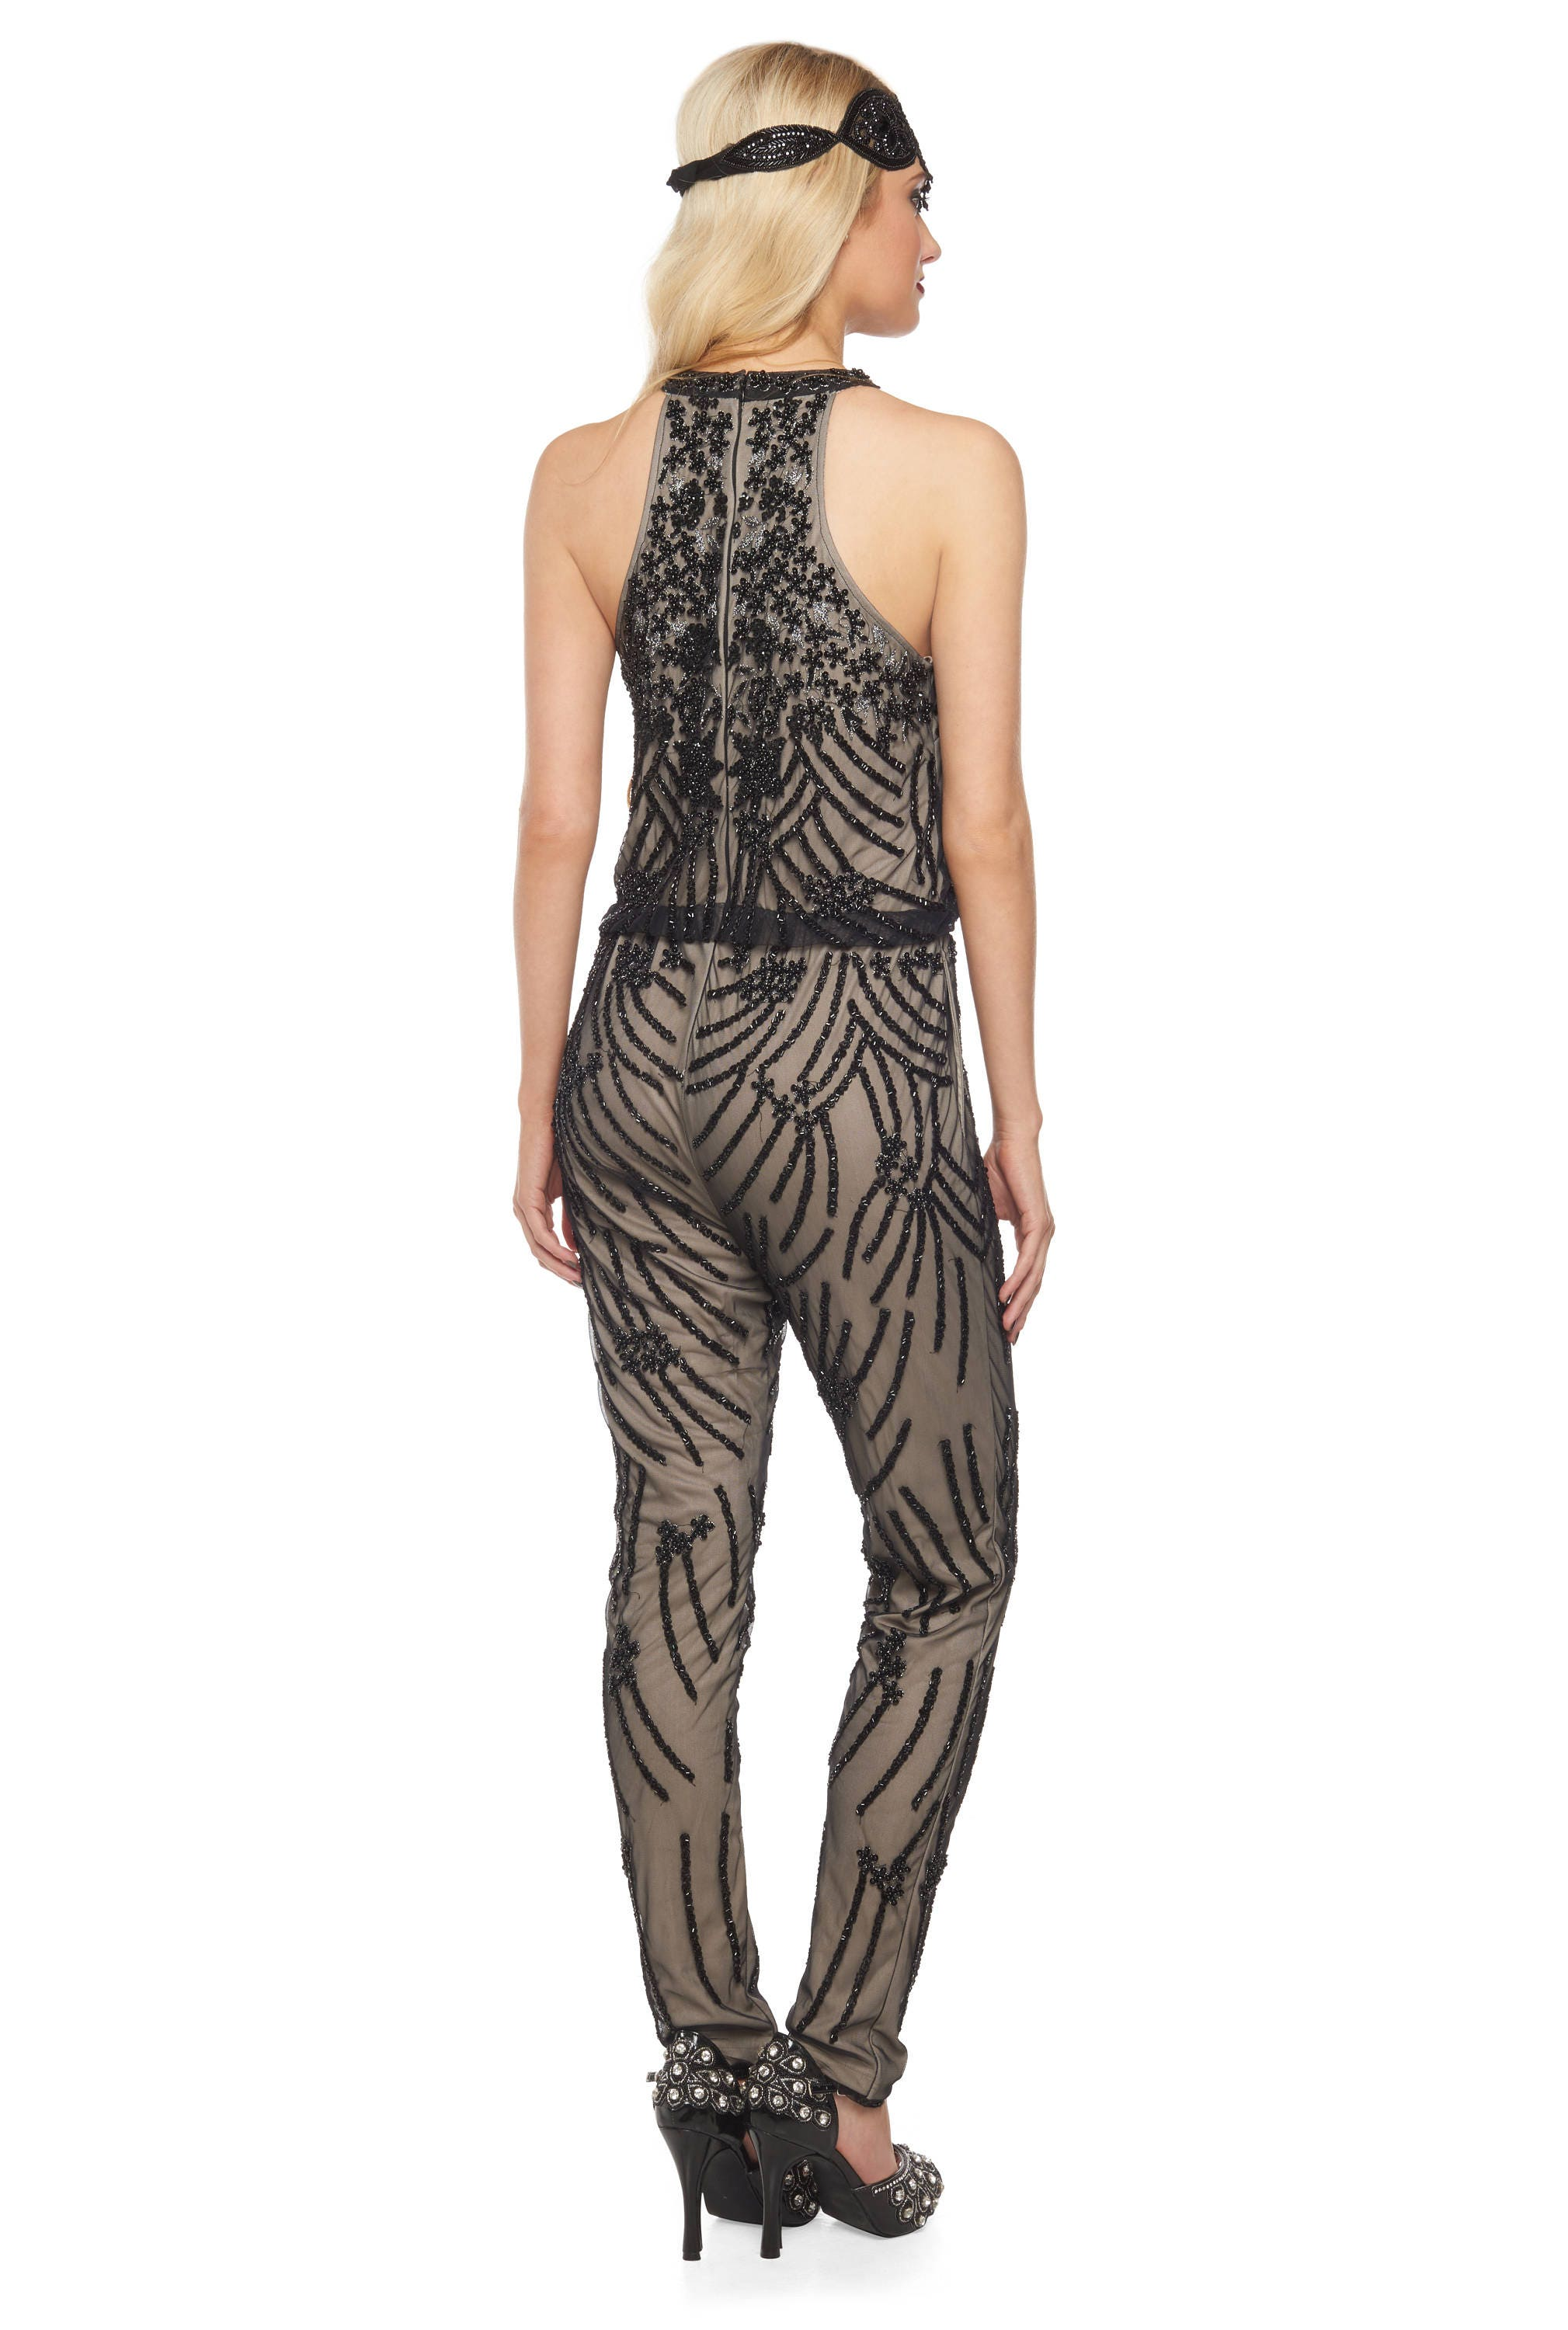 86730b8976e Black Nude Jumpsuit Romper Cora 1920s Vintage Inspired Great Gatsby Art  Deco Charleston Downton Abbey Bridesmaid Wedding